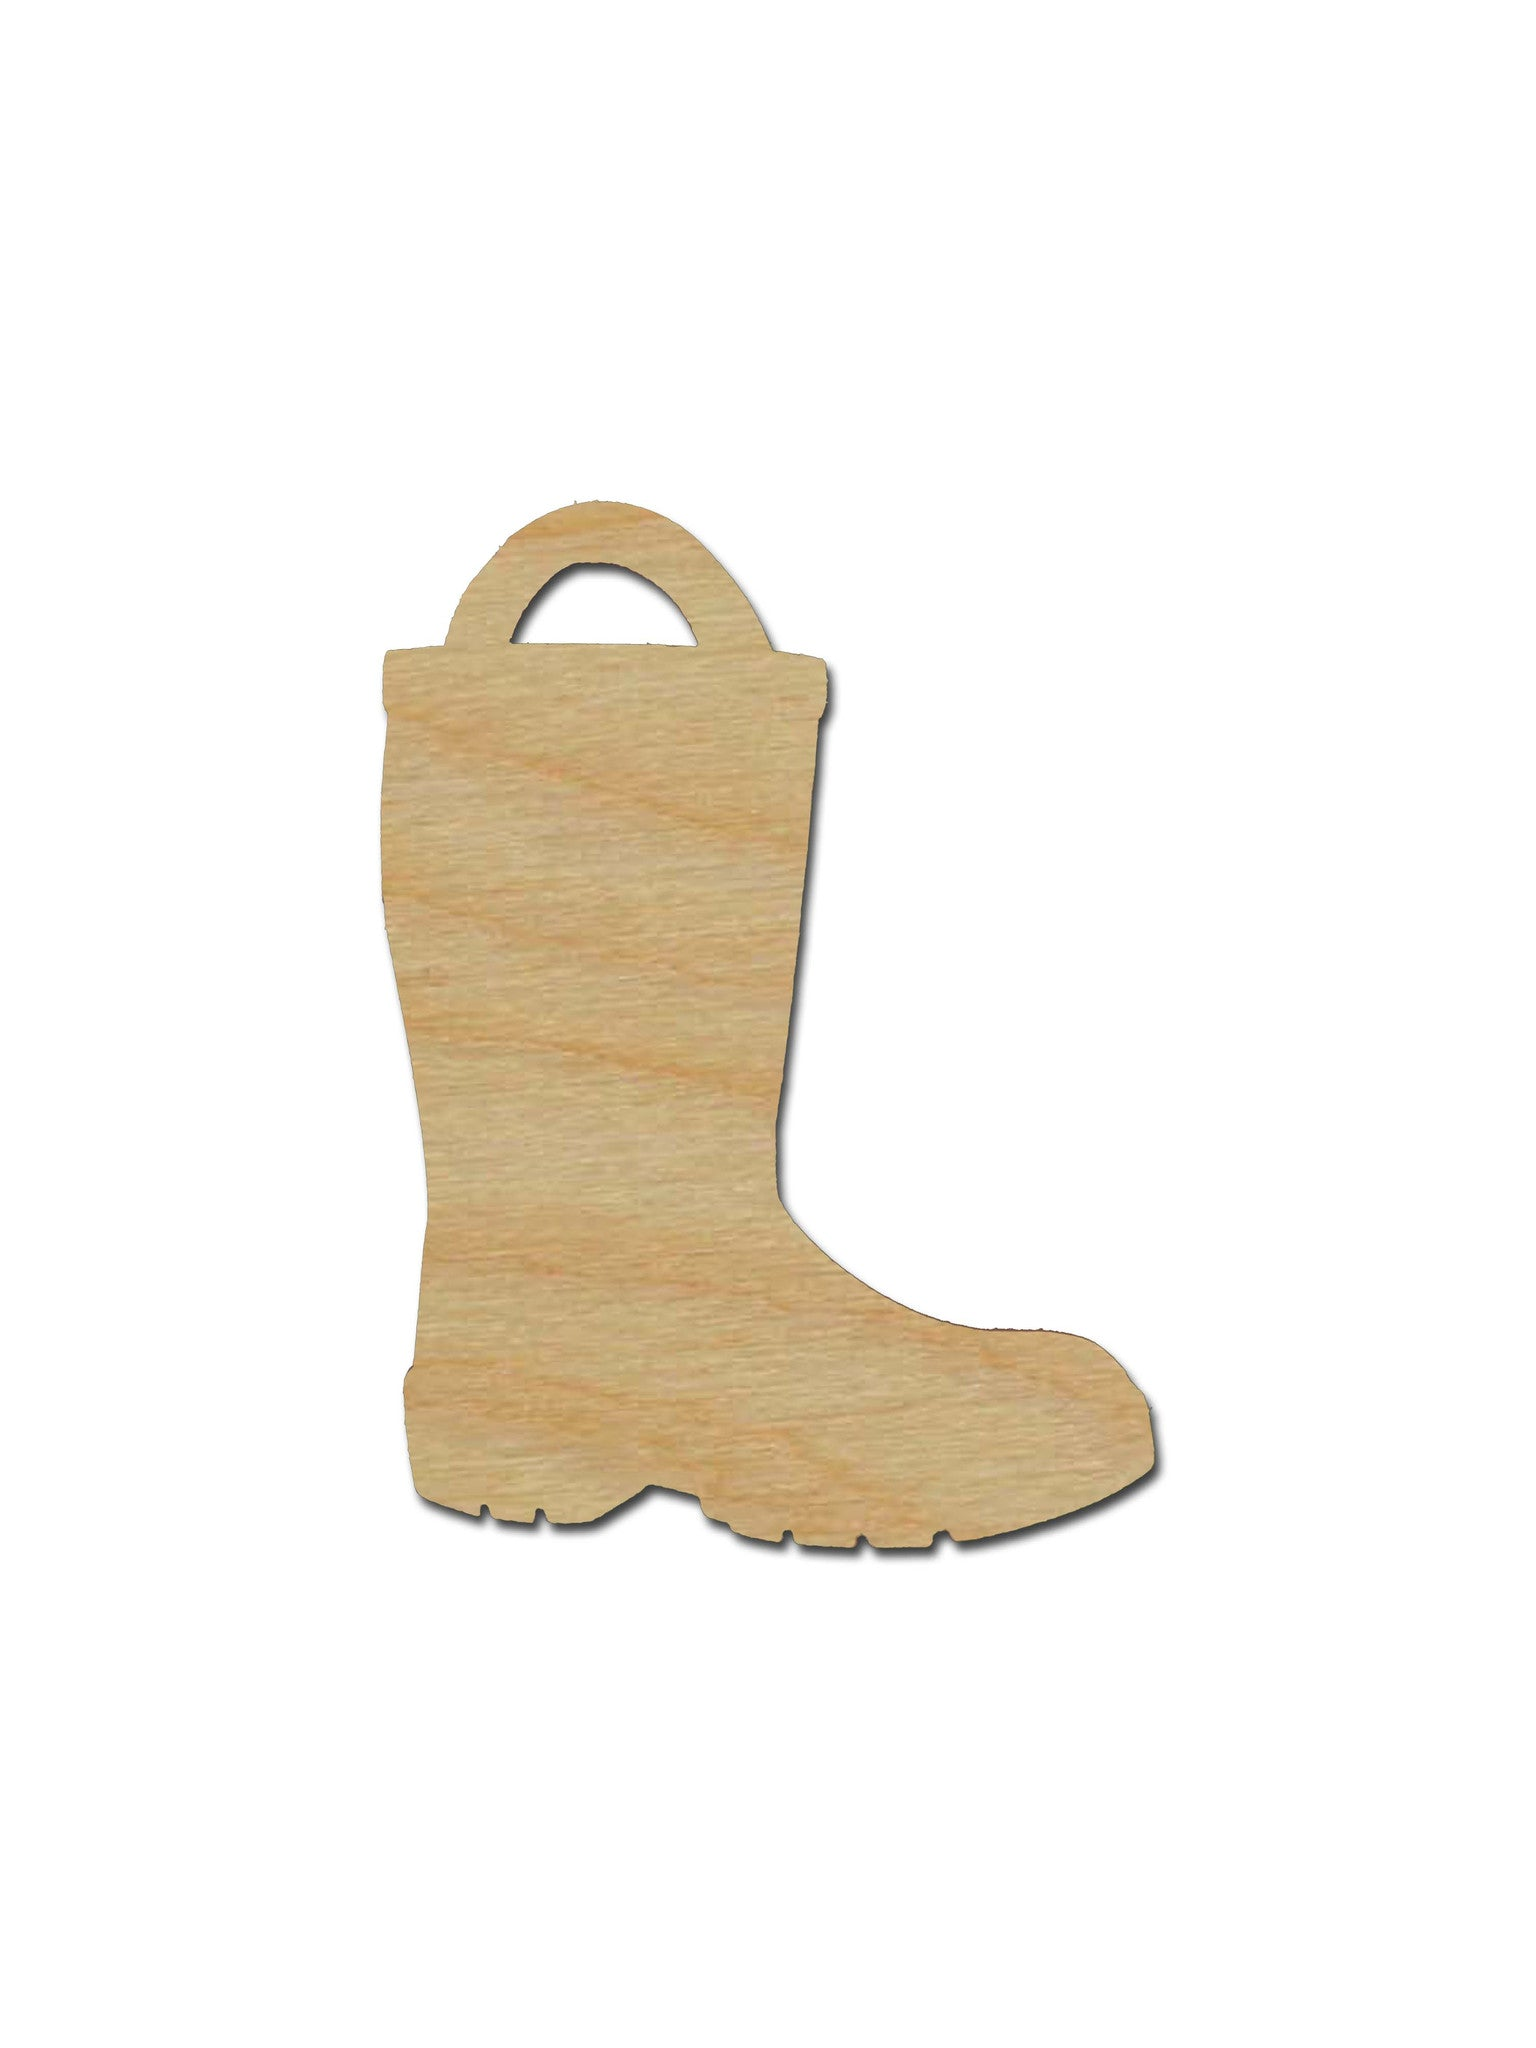 Fireman Boot Unfinished Wood Cutouts